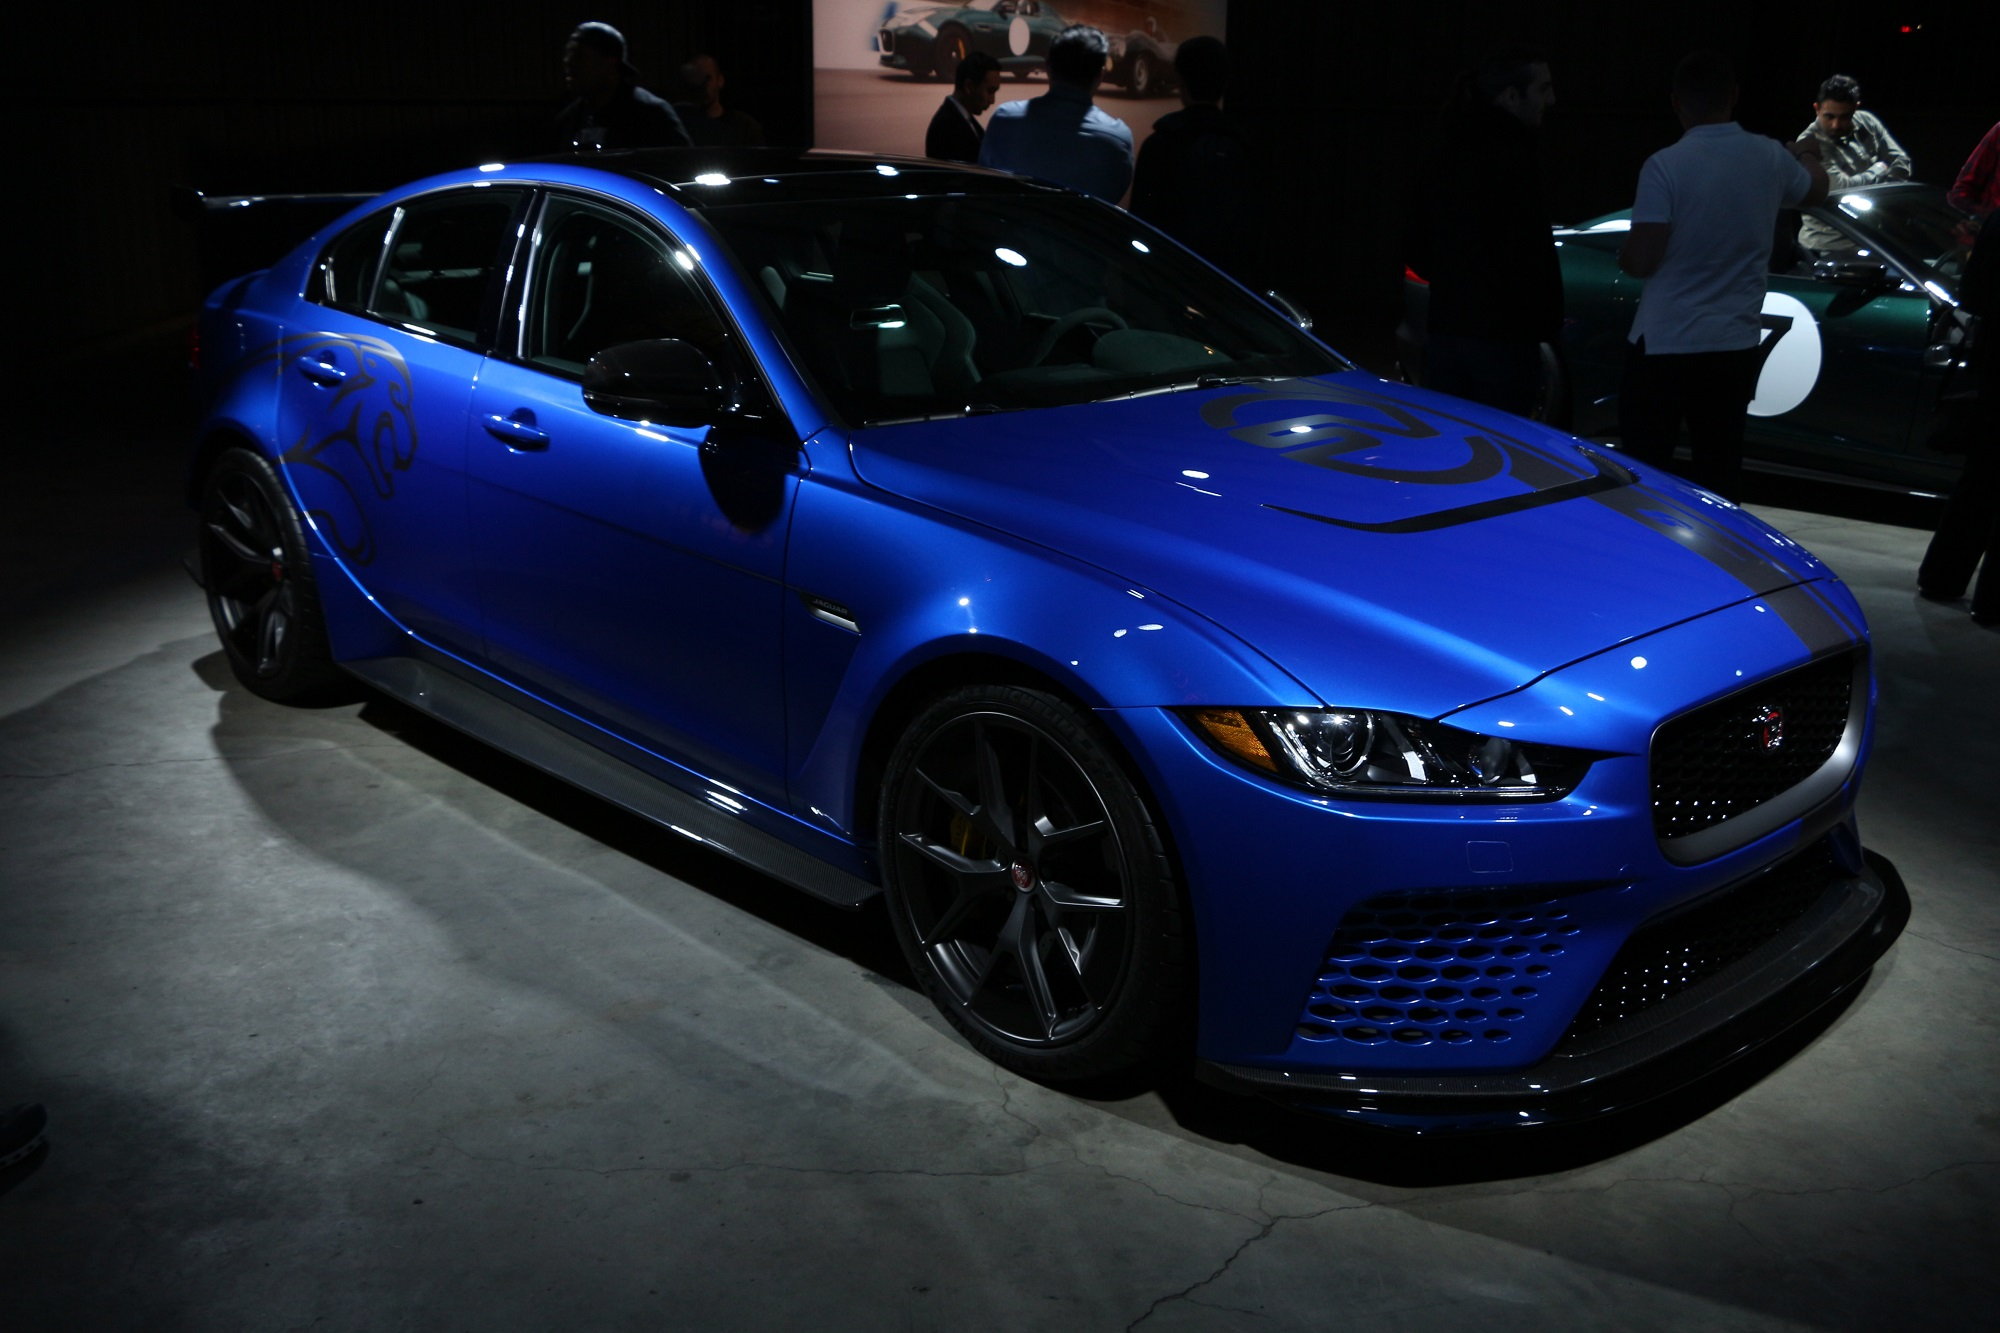 jaguarforums.com Jaguar SVO SV Project 7 XE Project 8 LA Los Angeles Auto Show 2017 2018